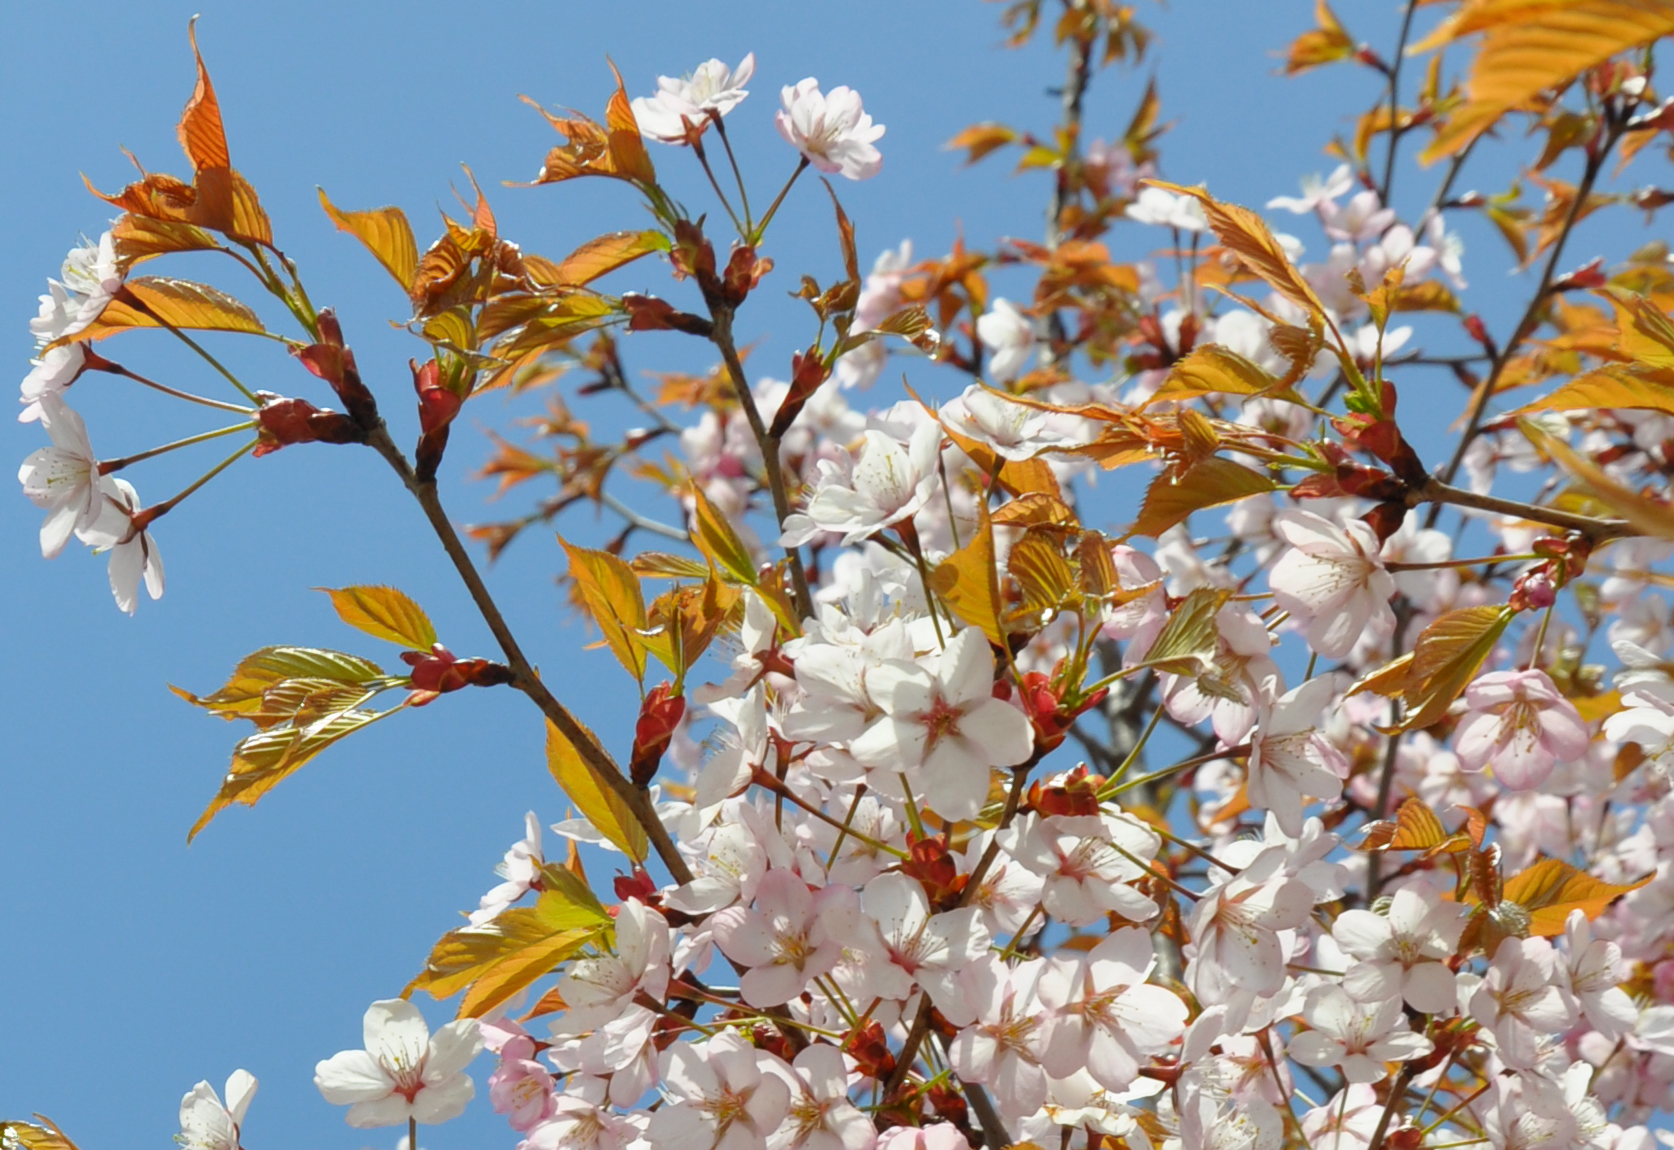 Cherry blossoms on a blue sky.